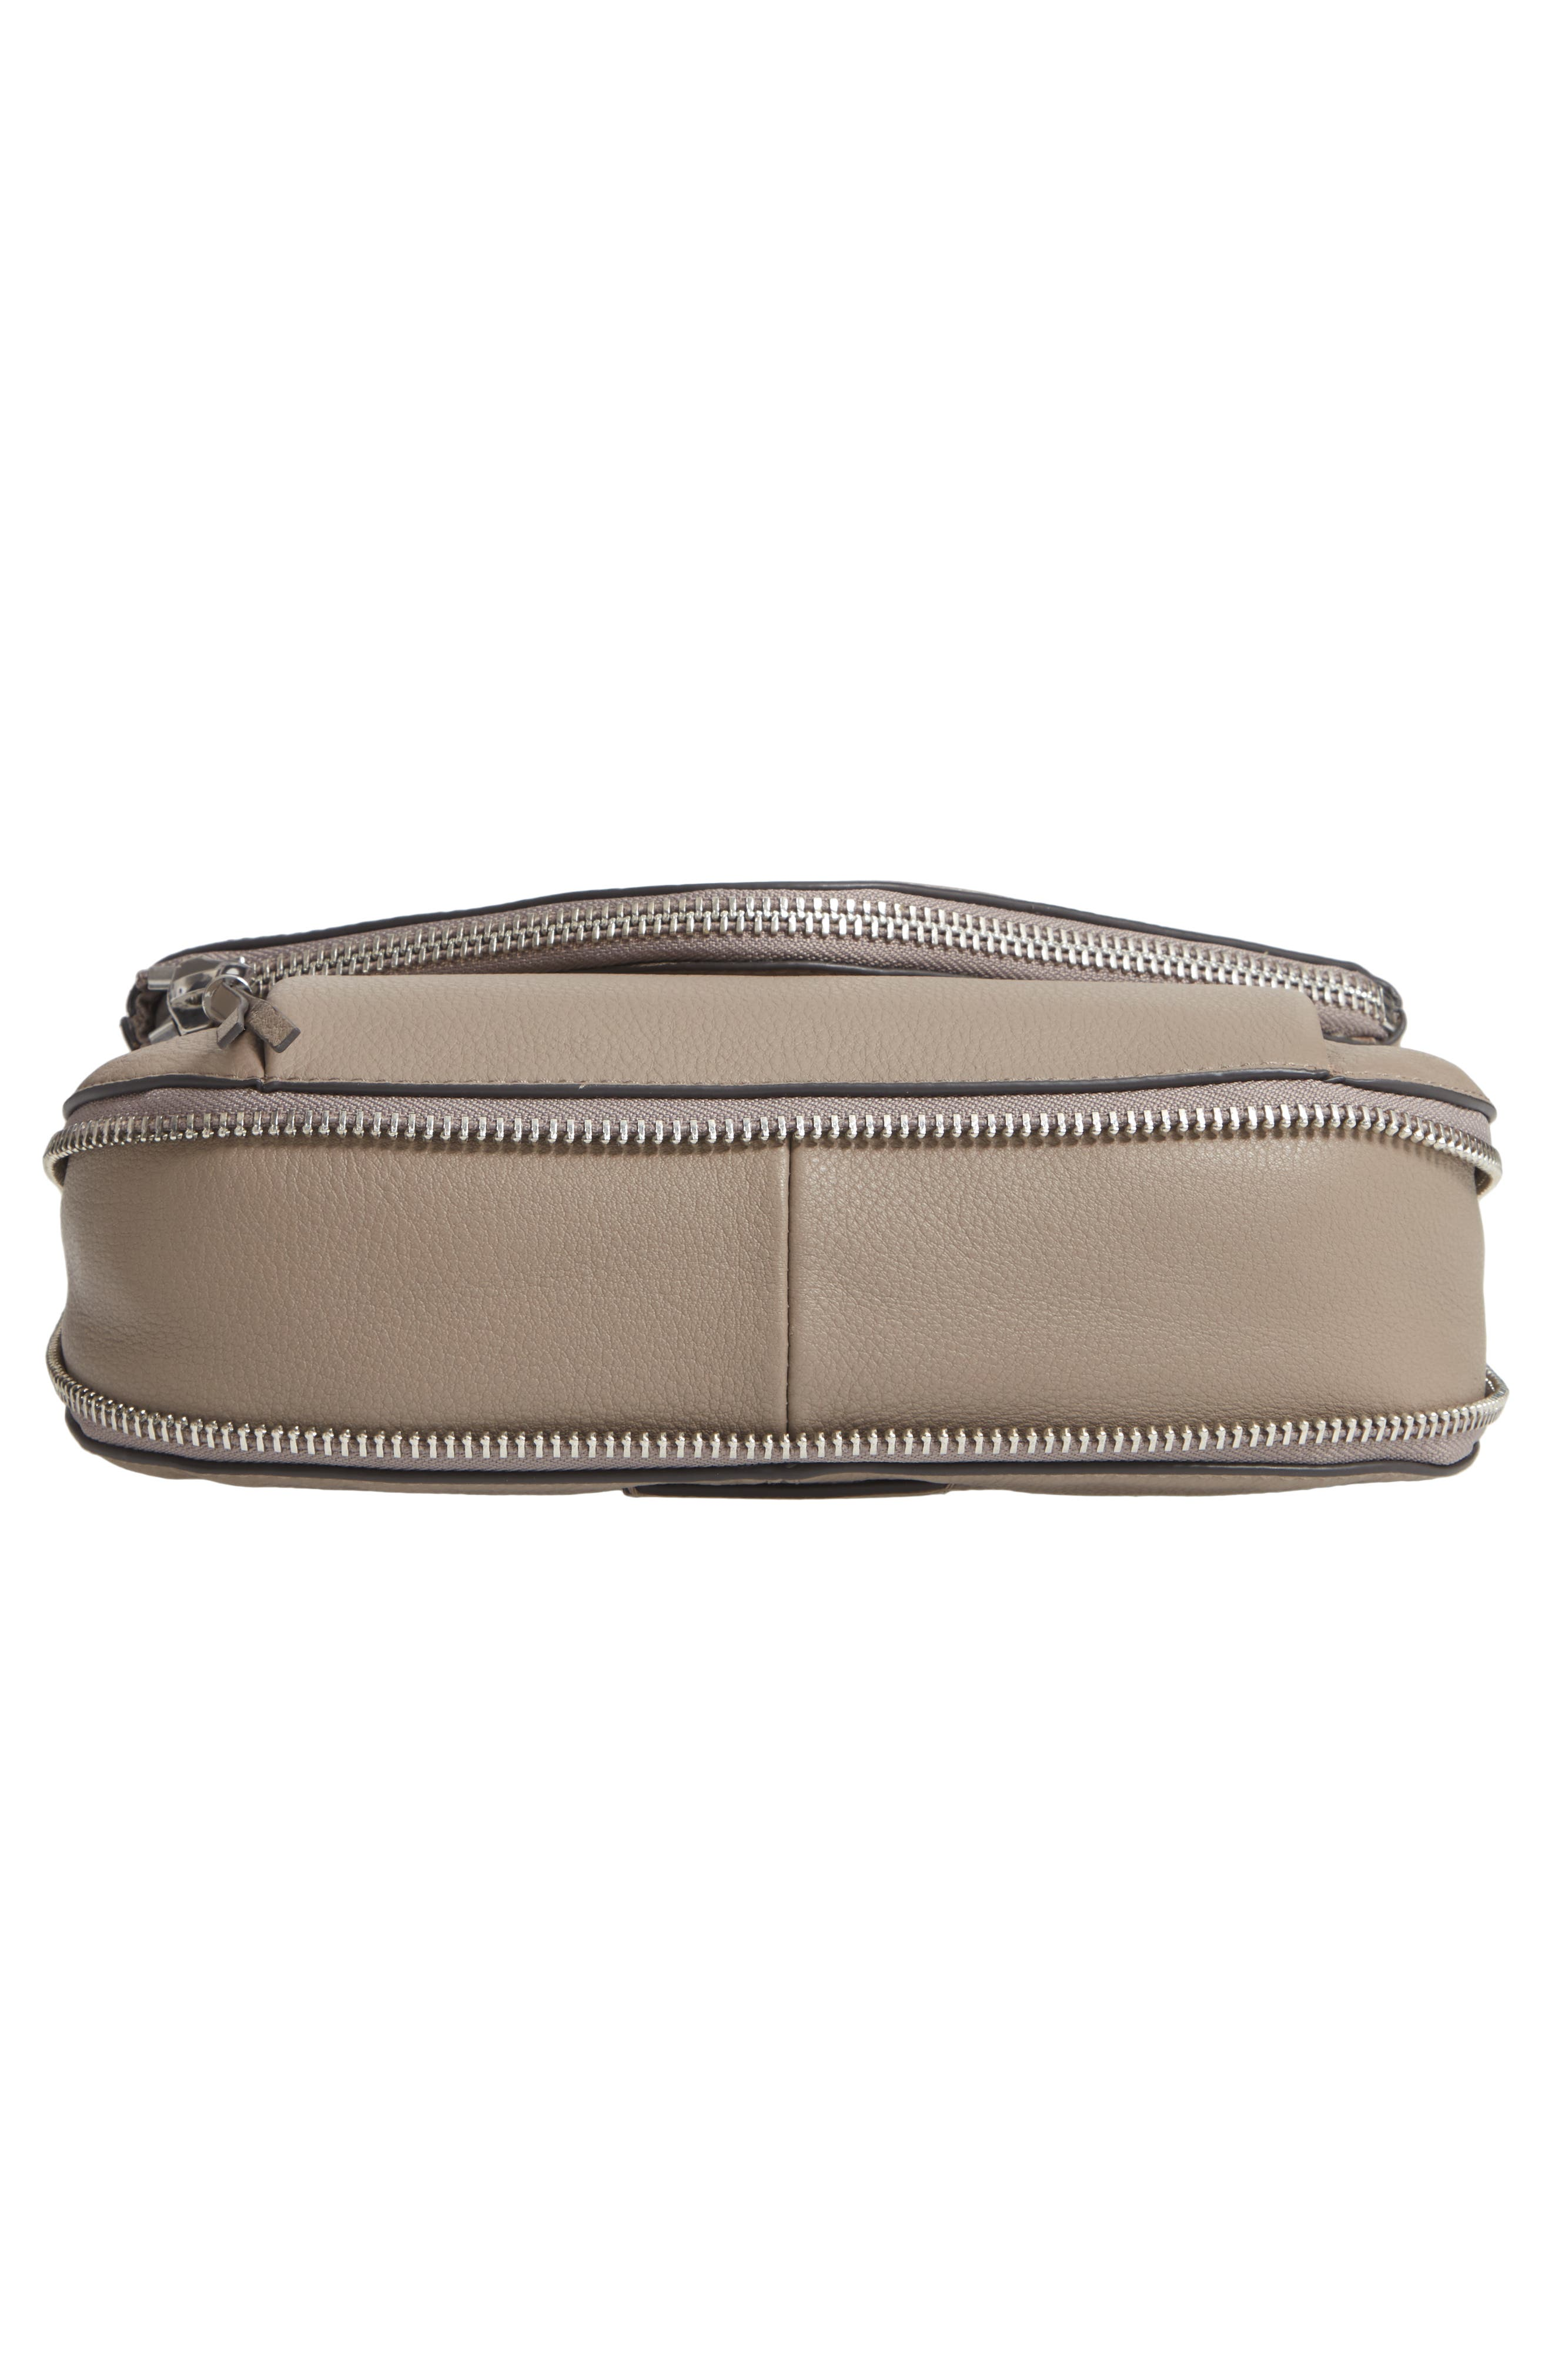 Key Leather Crossbody Bag,                             Alternate thumbnail 6, color,                             TRANQUILITY